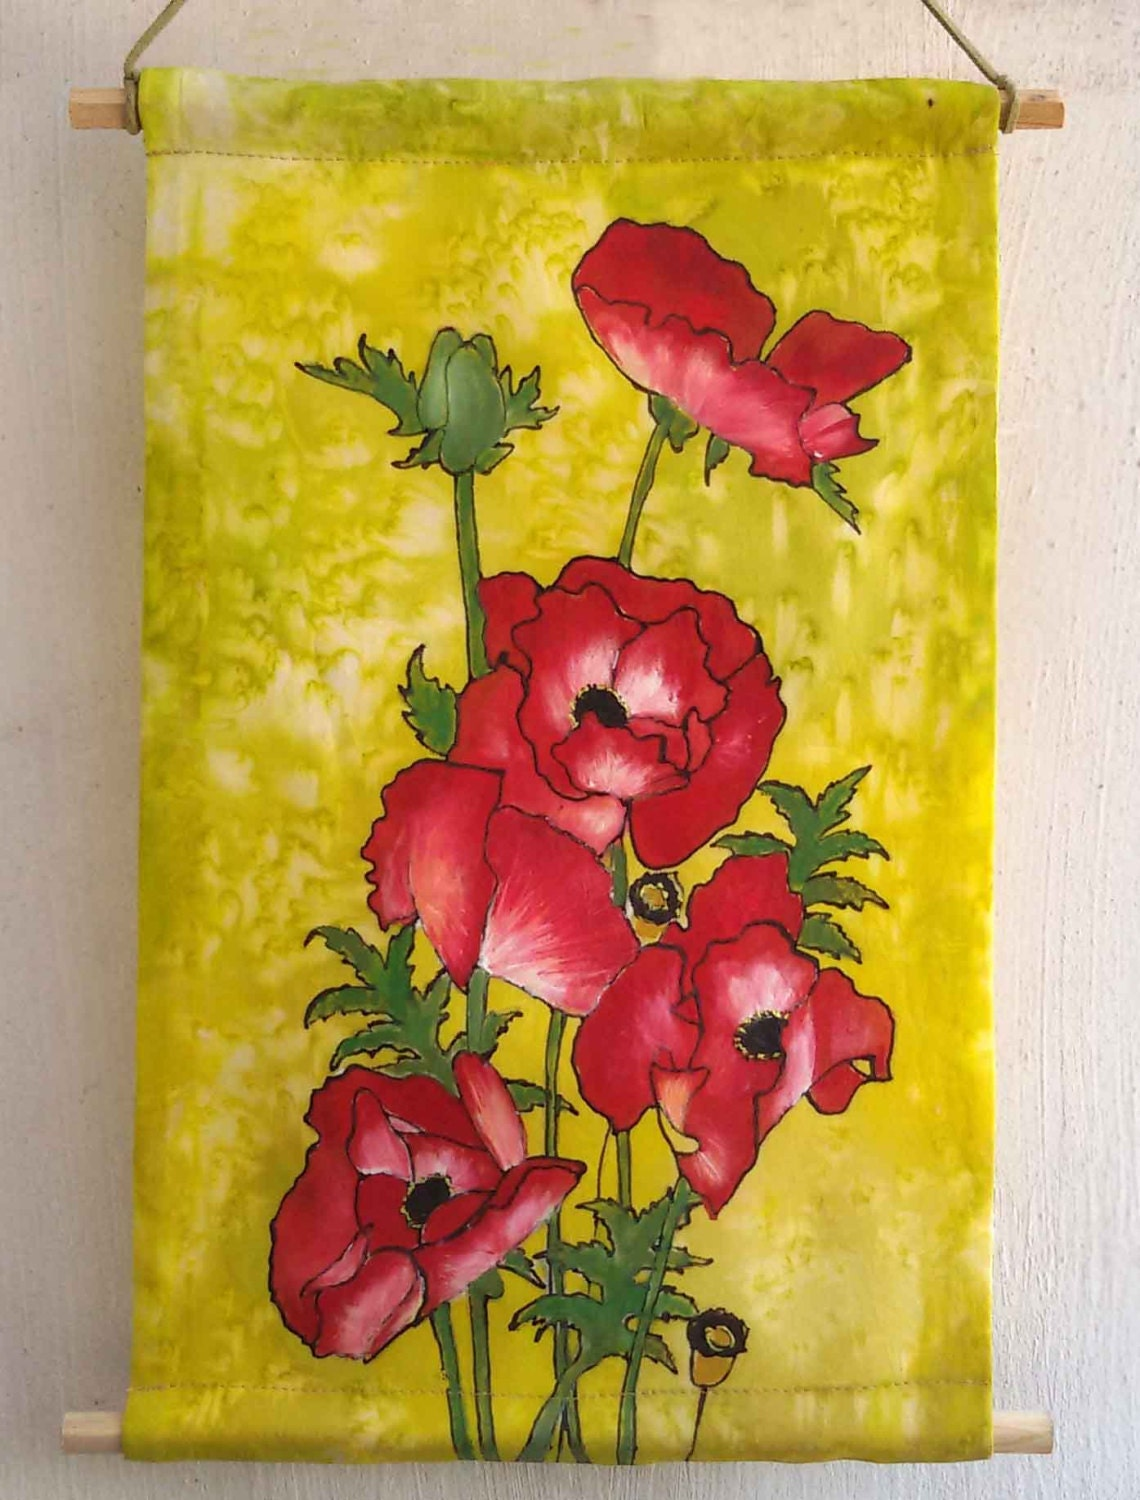 Red poppies wall art wall decor home decor silk painting | Etsy